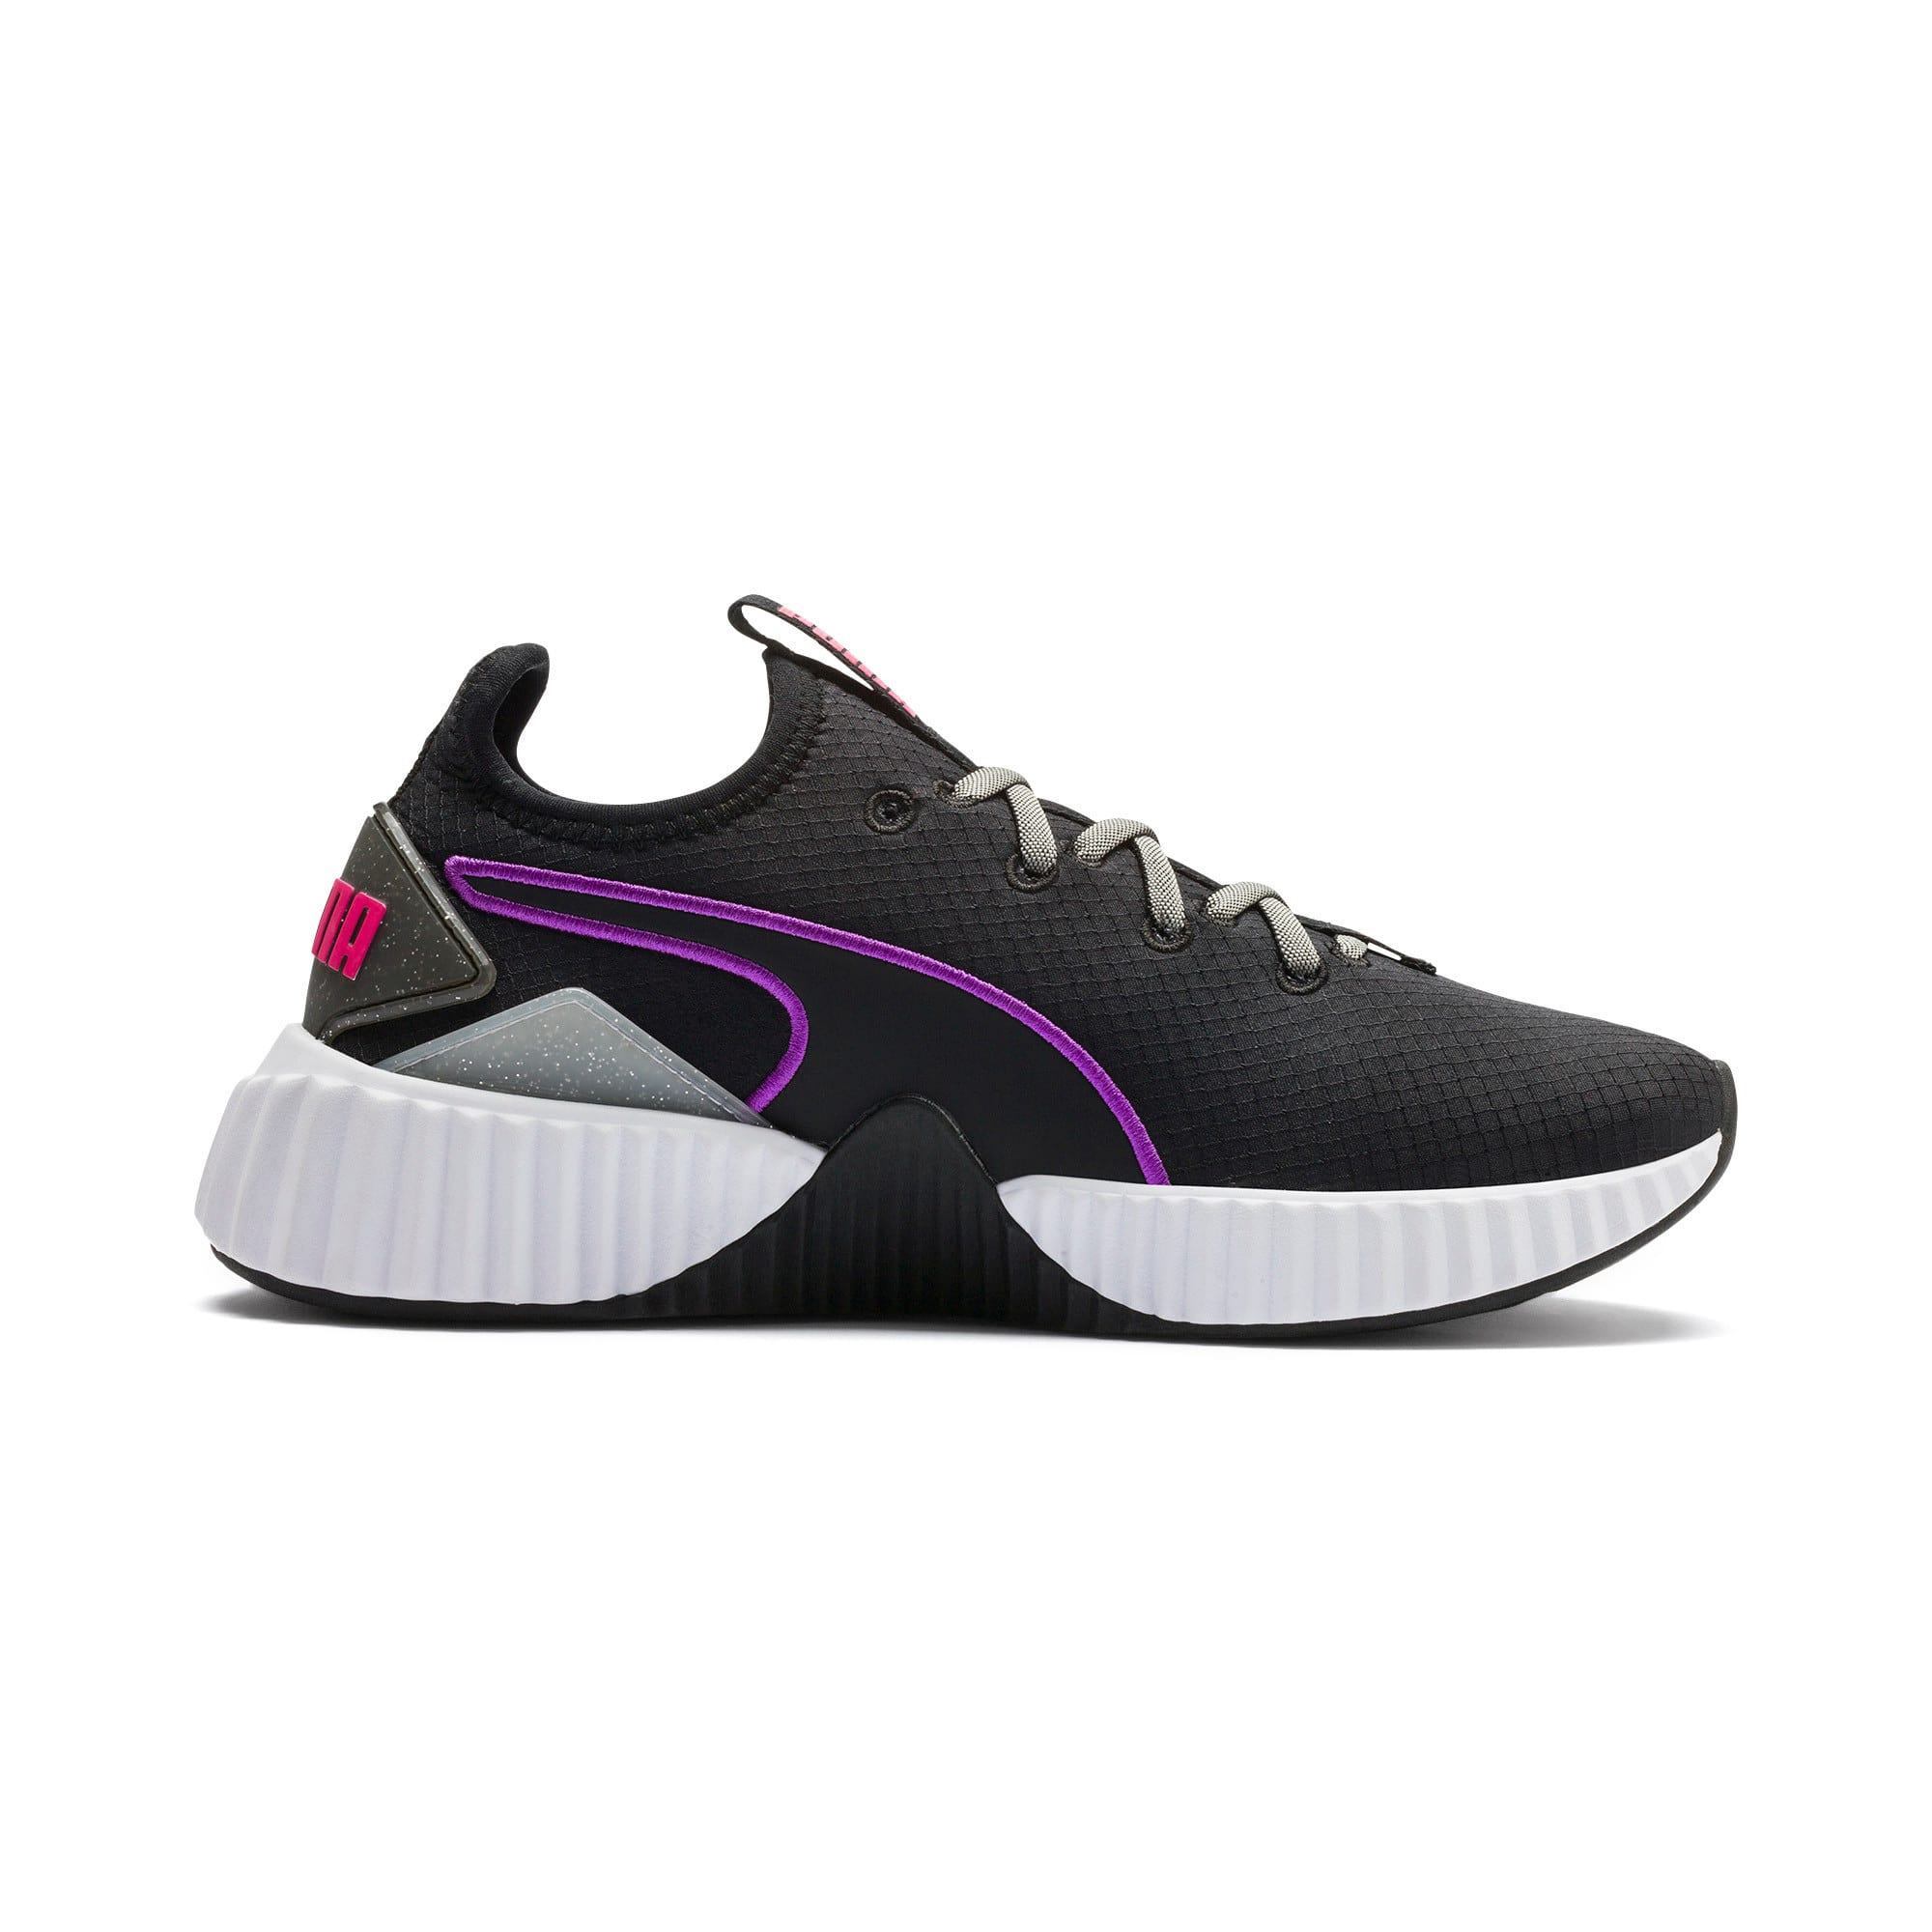 Thumbnail 6 of Defy Sheen Women's Training Shoes, Puma Black-Puma White, medium